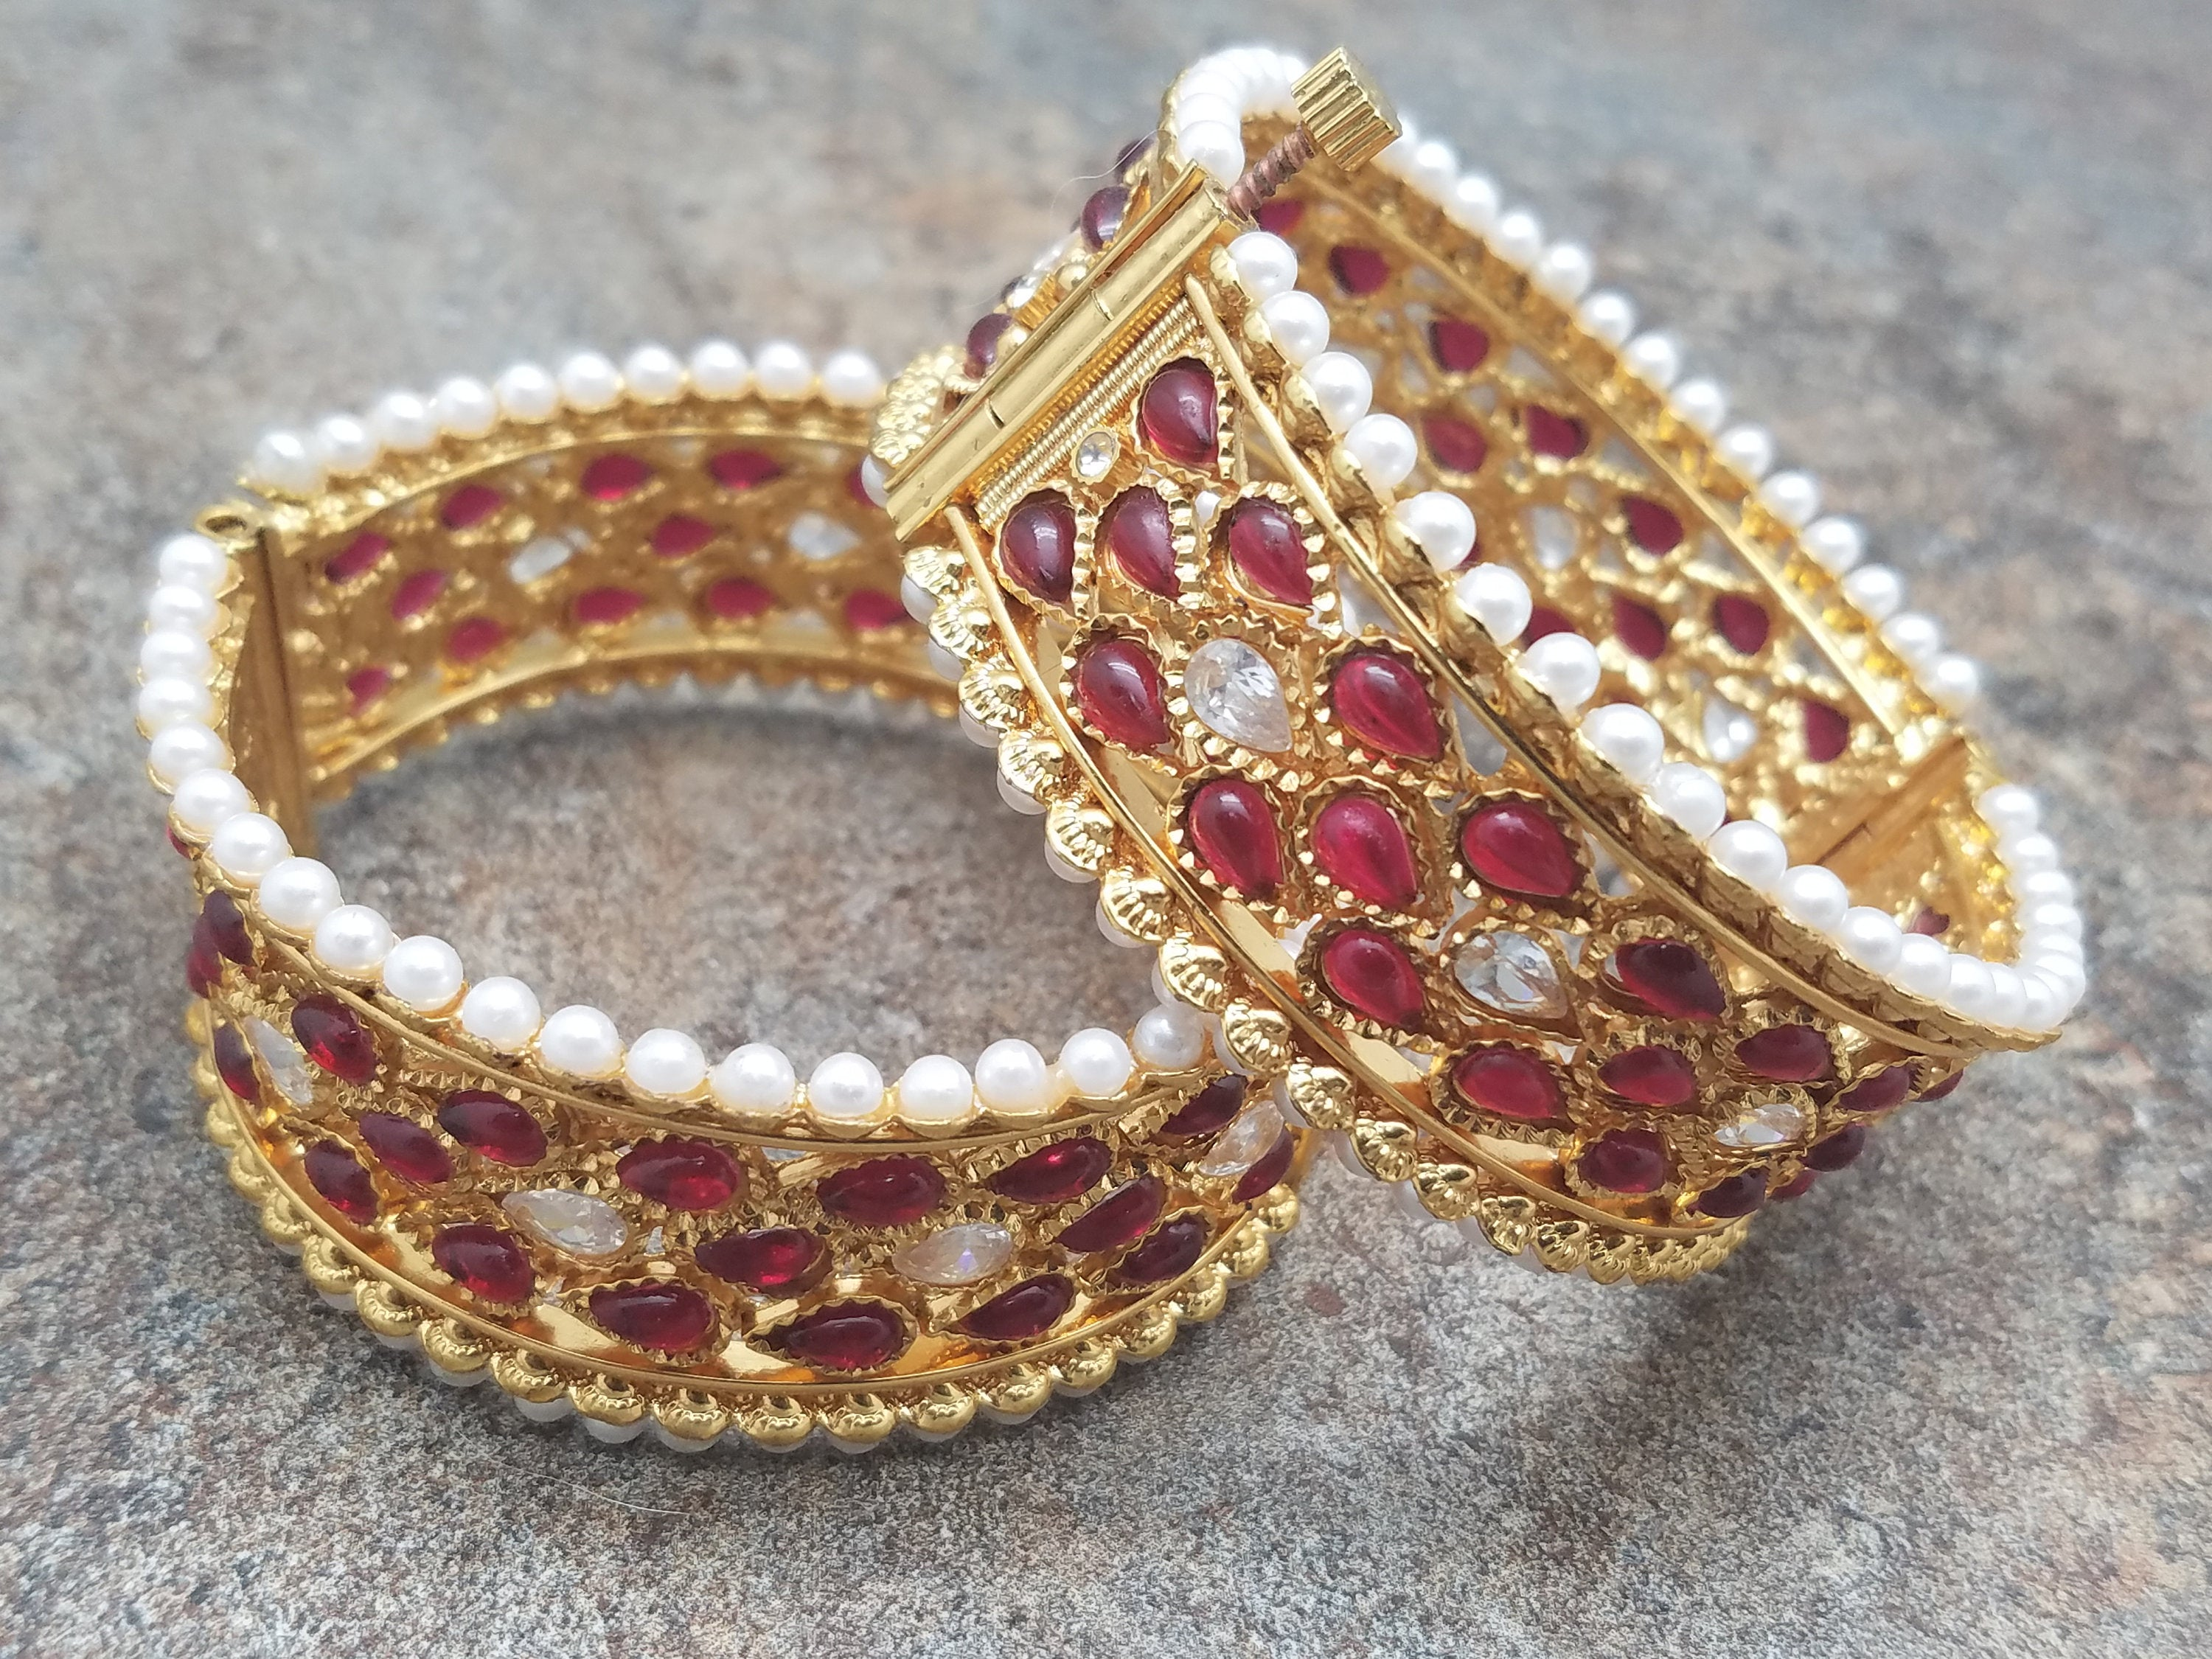 Pair of Bangles, White Pearl & Faux Ruby Tear Drop Kada,Size 2/6